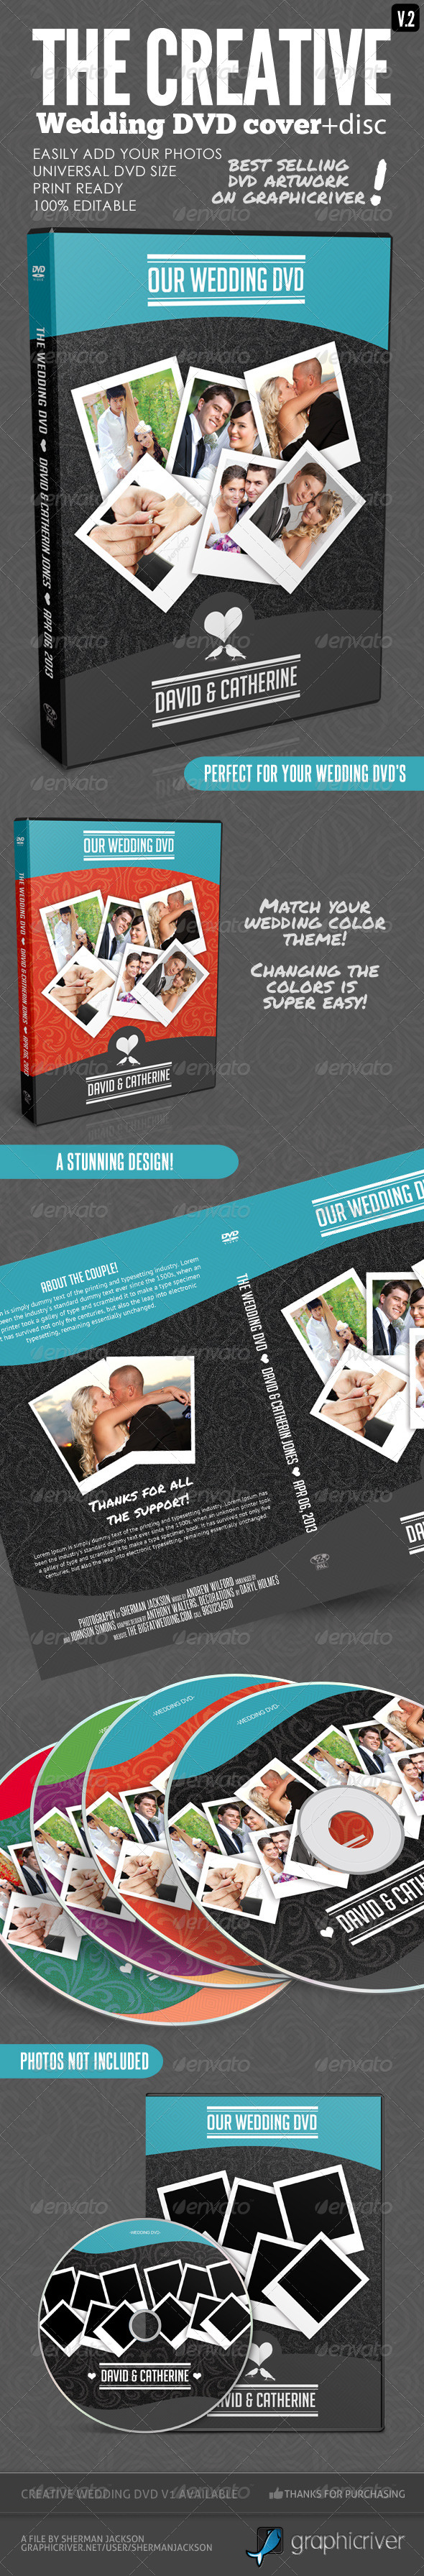 Creative Wedding DVD Covers & Disc Label V.2